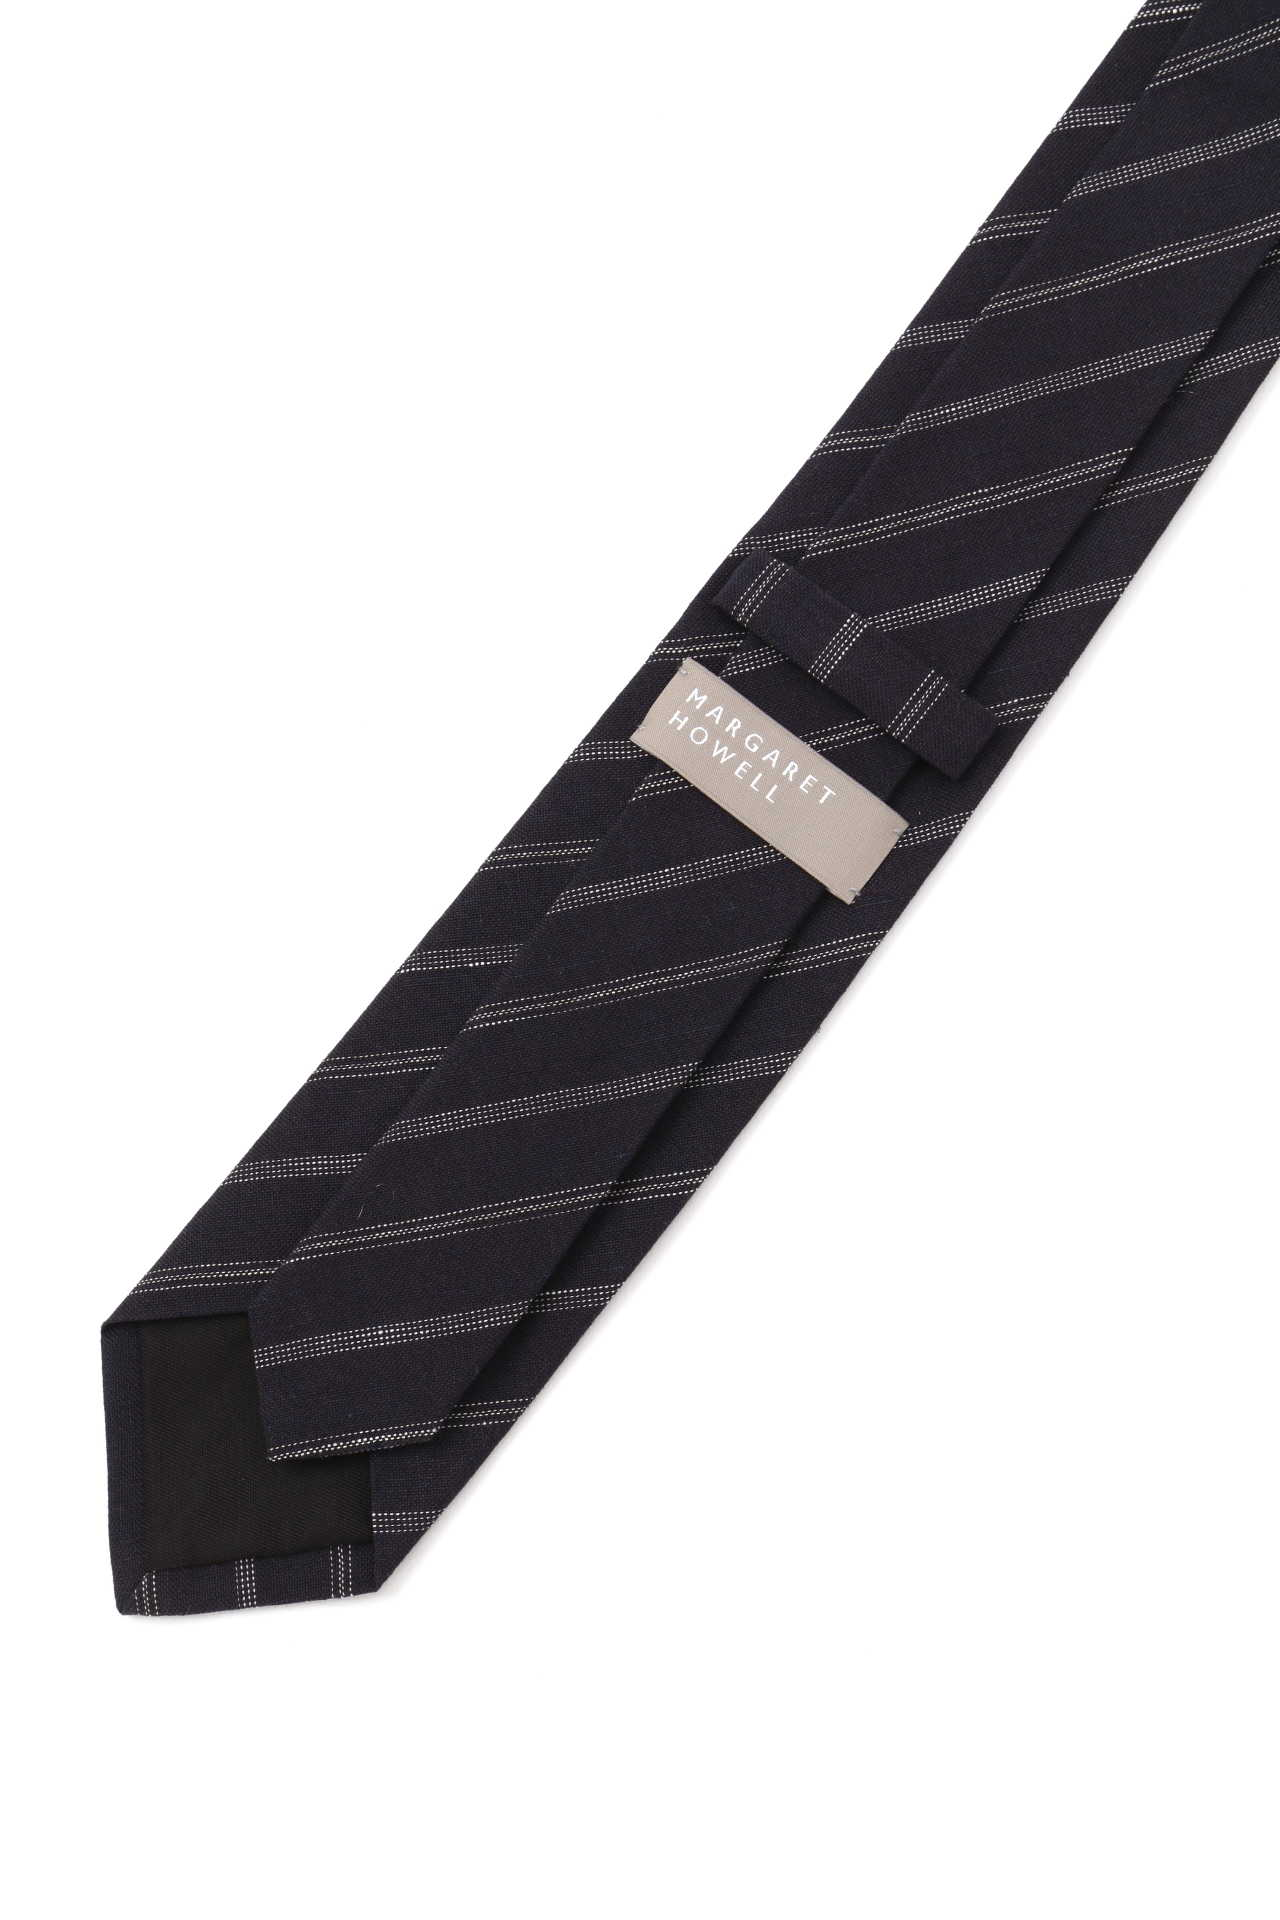 GRAPHIC STRIPE TIE3